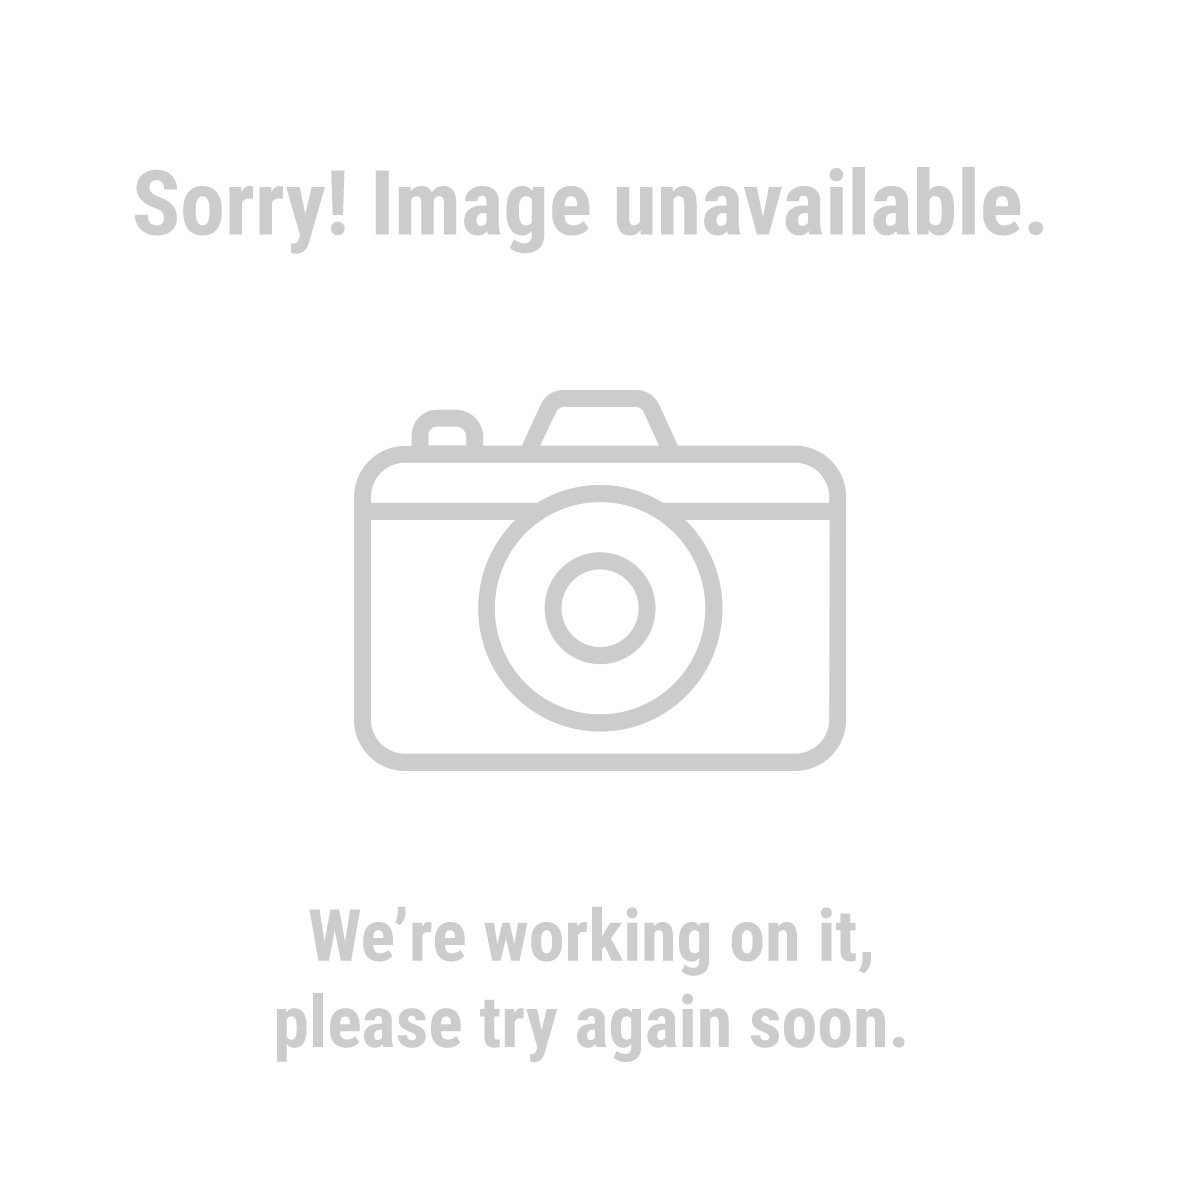 Storehouse® 68238 Toolbox Organizer with 4 Drawers